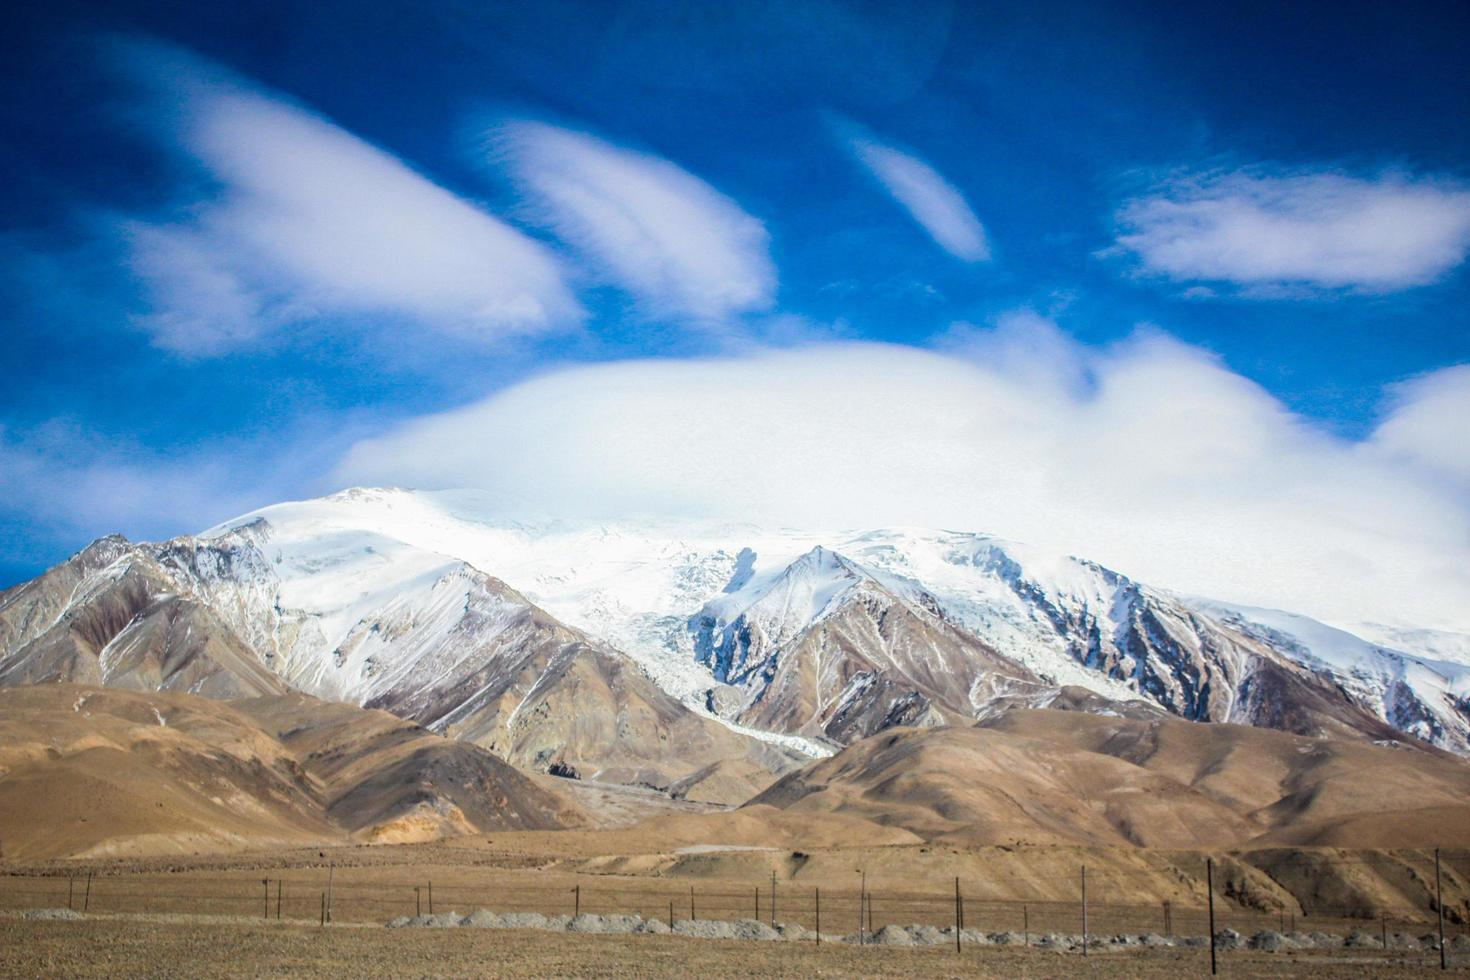 Snow-capped mountains under bright blue clouds photo